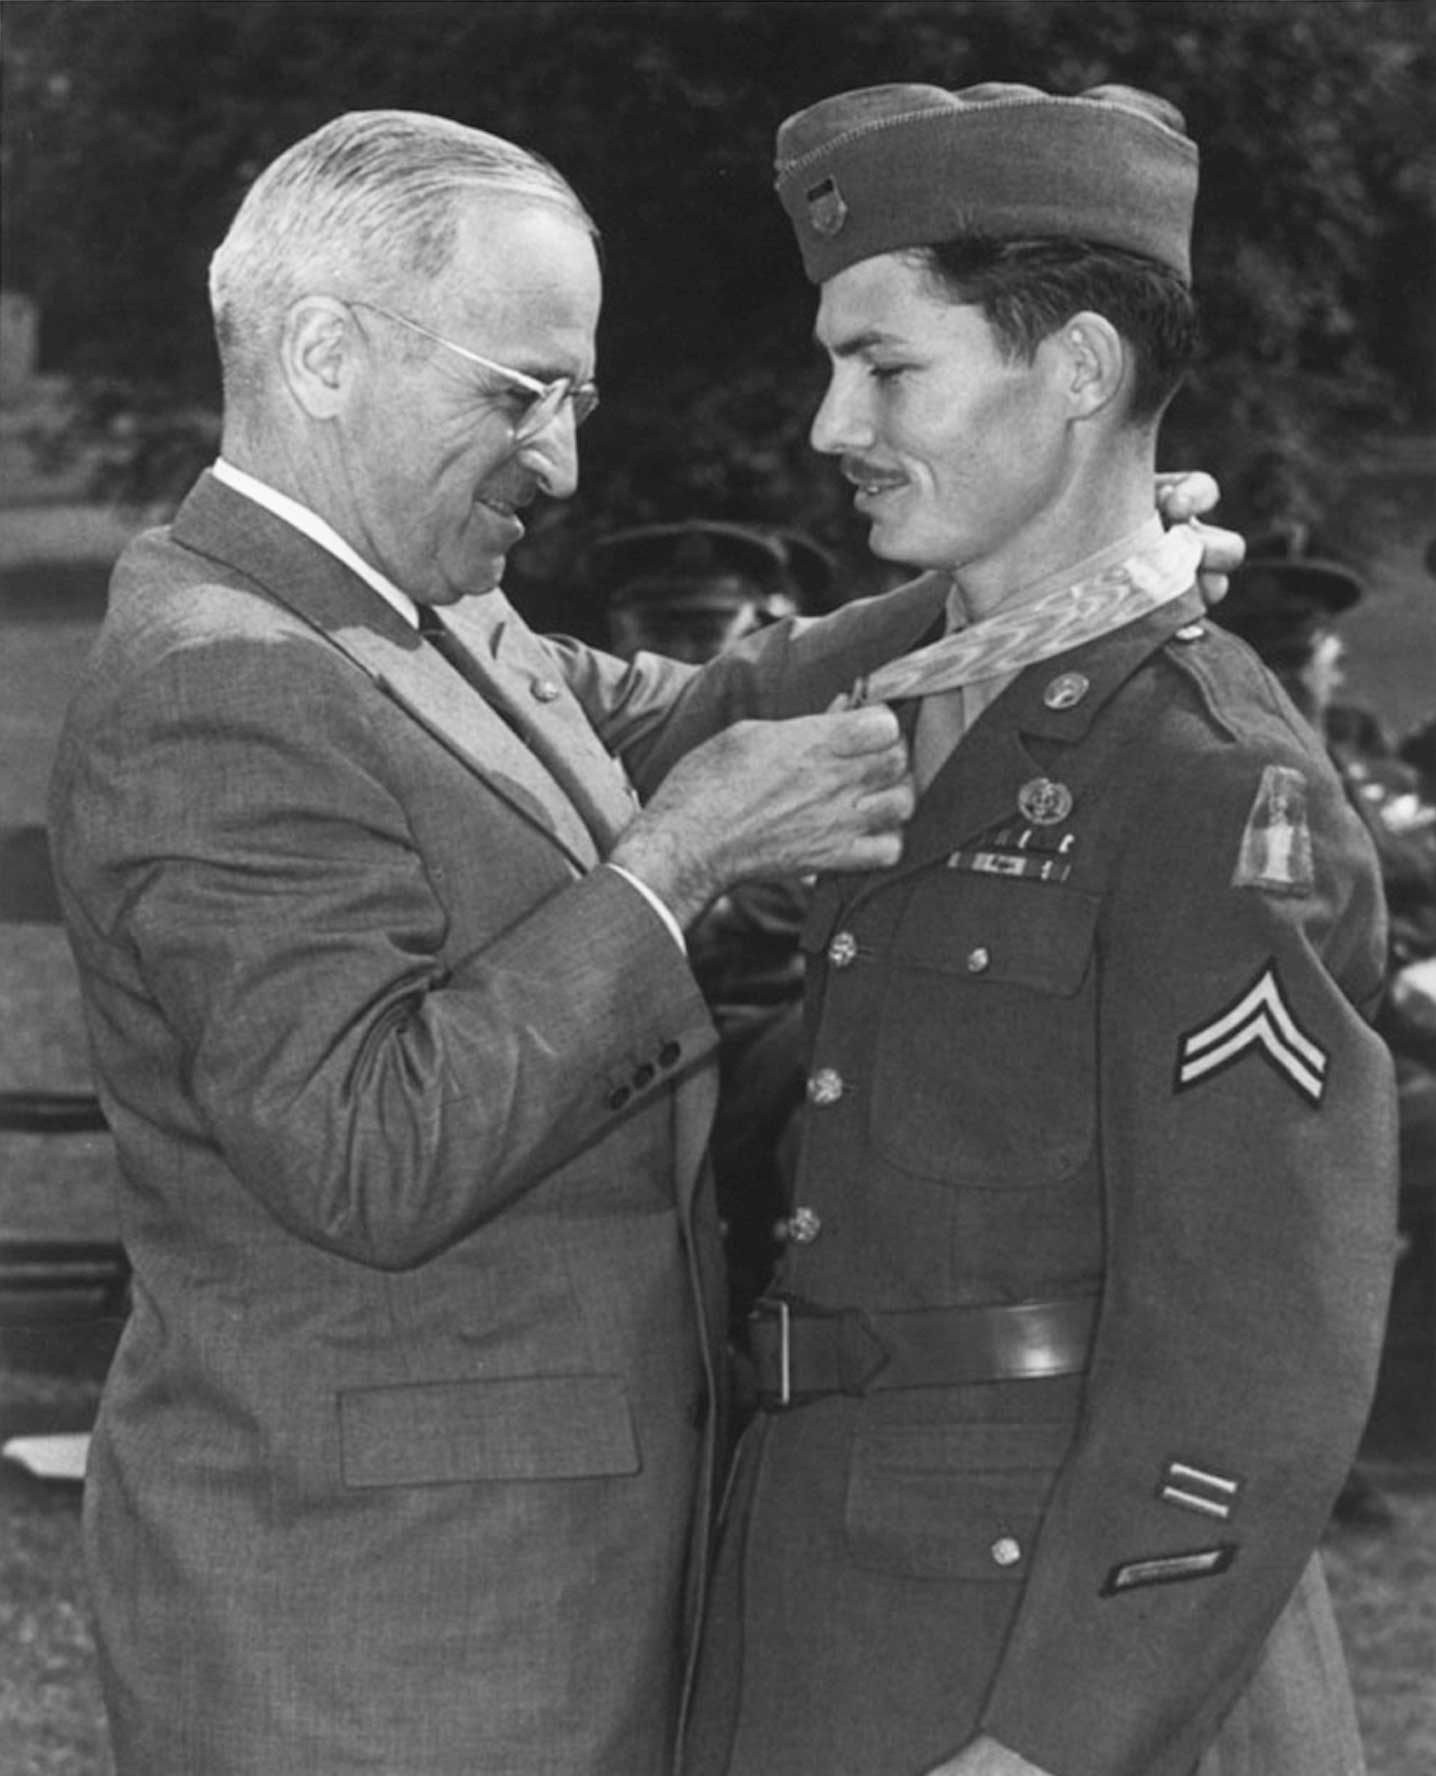 Desmond Doss receiving the Medal of Honor from President Harry Truman.